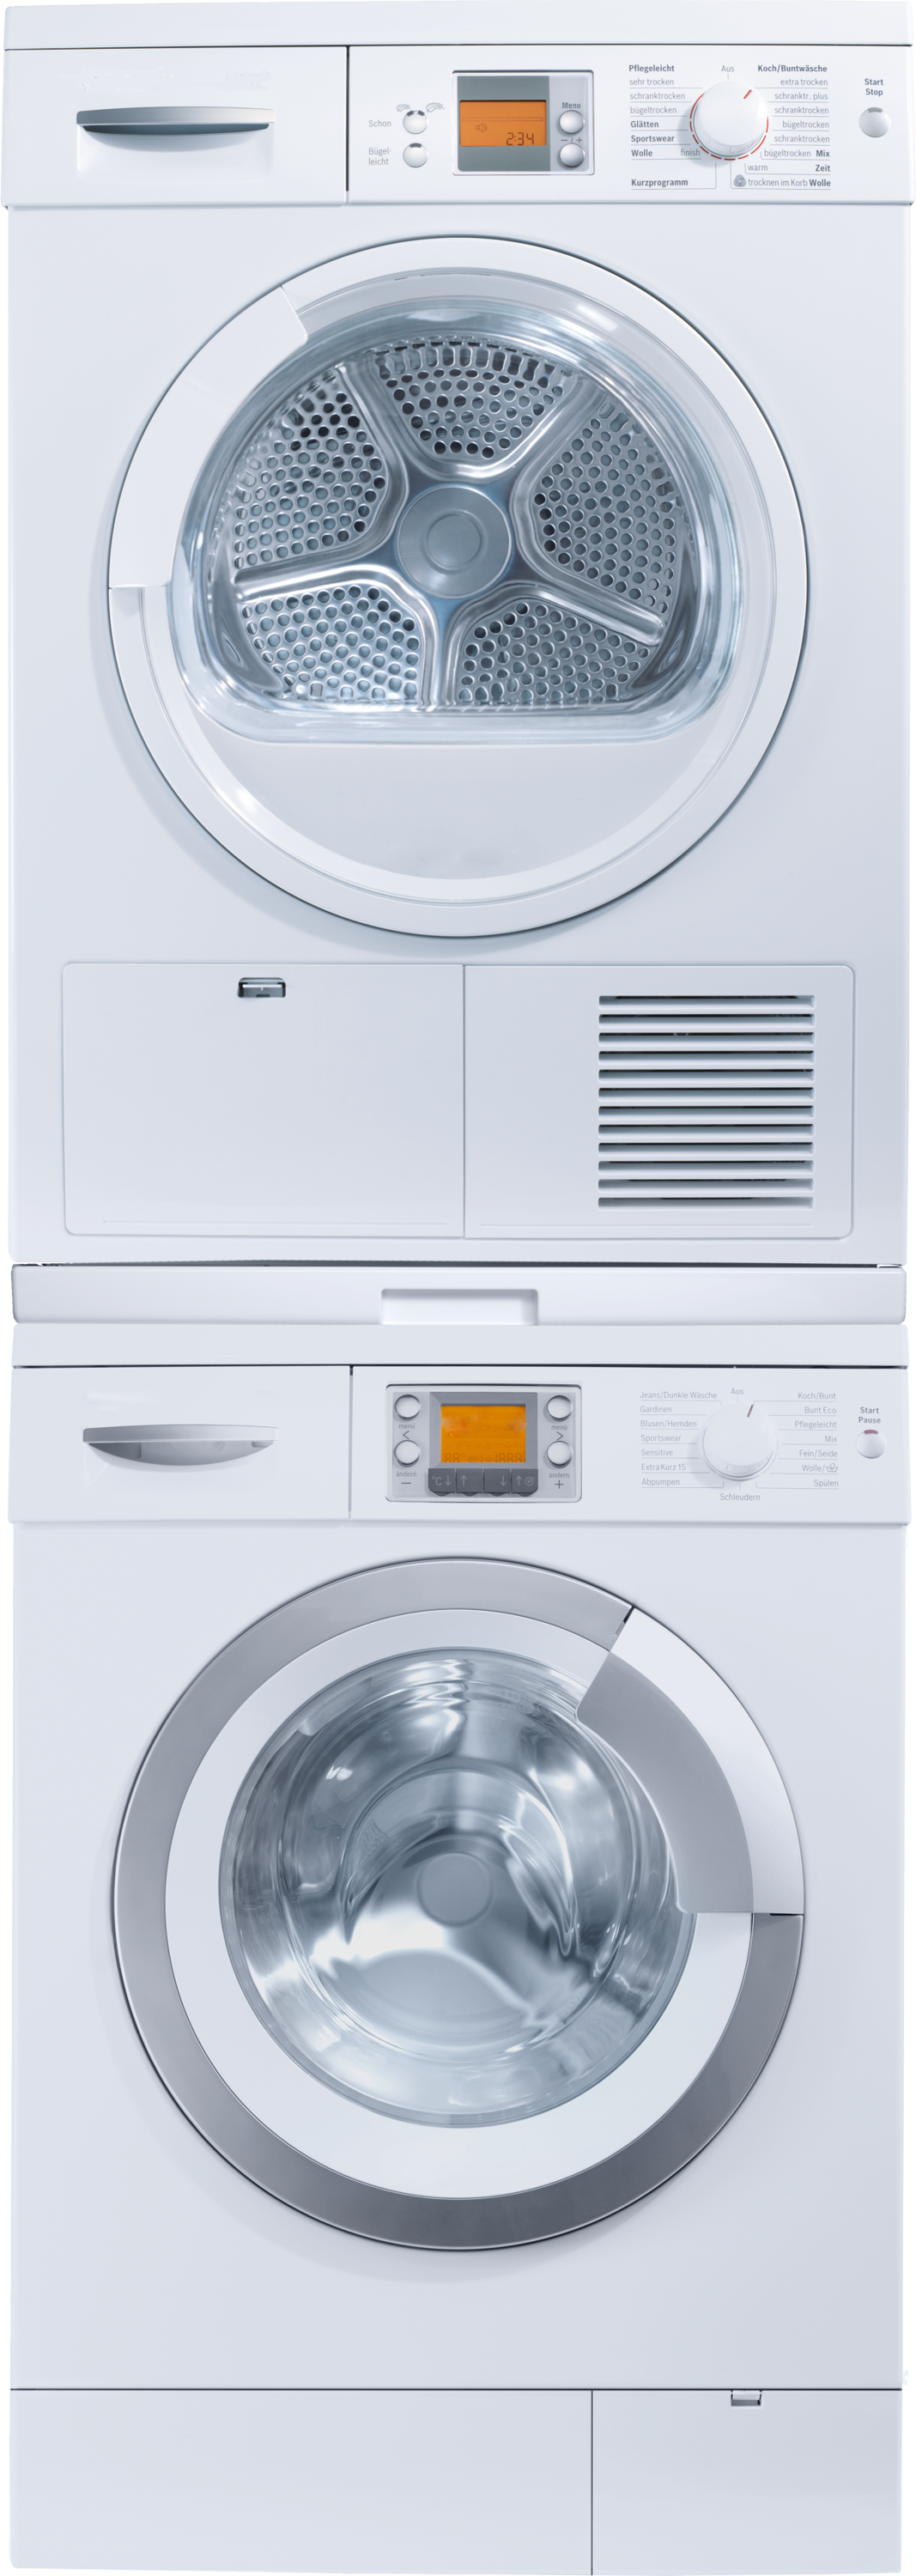 Bosch Washer And Dryer ~ Stacking kits how to organise your washer and dryer